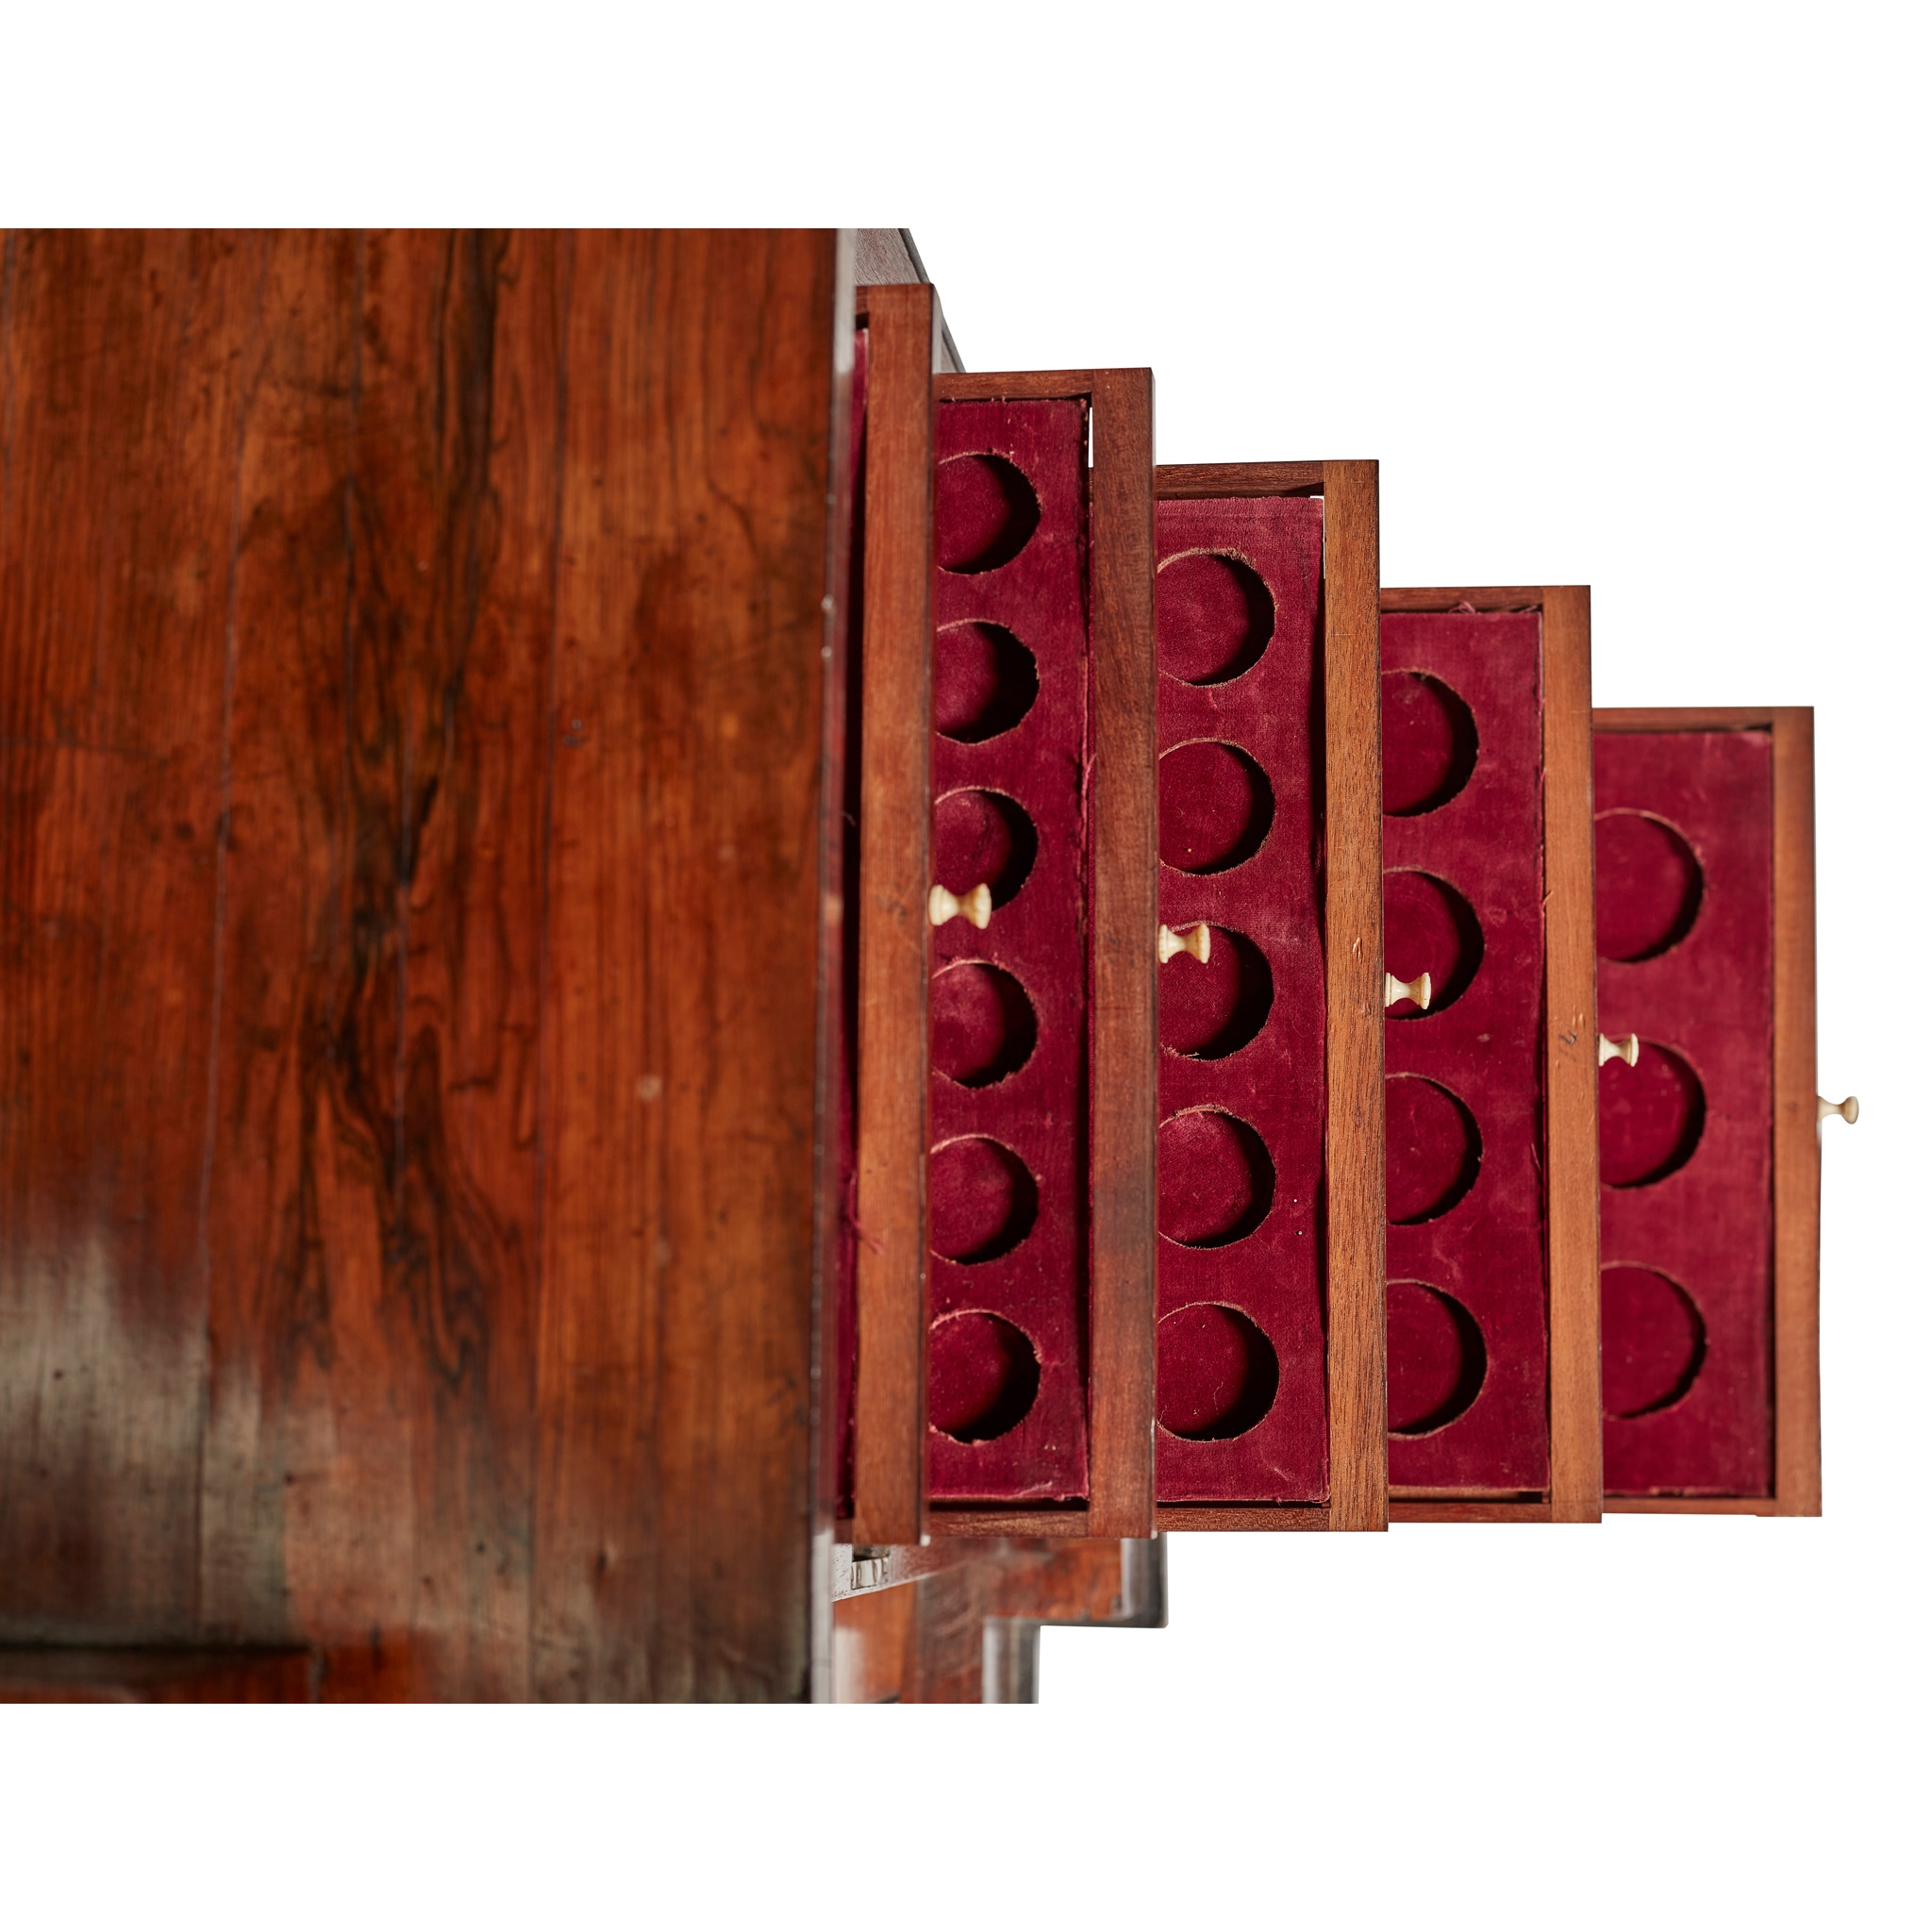 Y GEORGE IV ROSEWOOD AND BRASS INLAID COLLECTOR'S CABINET, IN THE MANNER OF GEORGE BULLOCK EARLY - Image 3 of 3